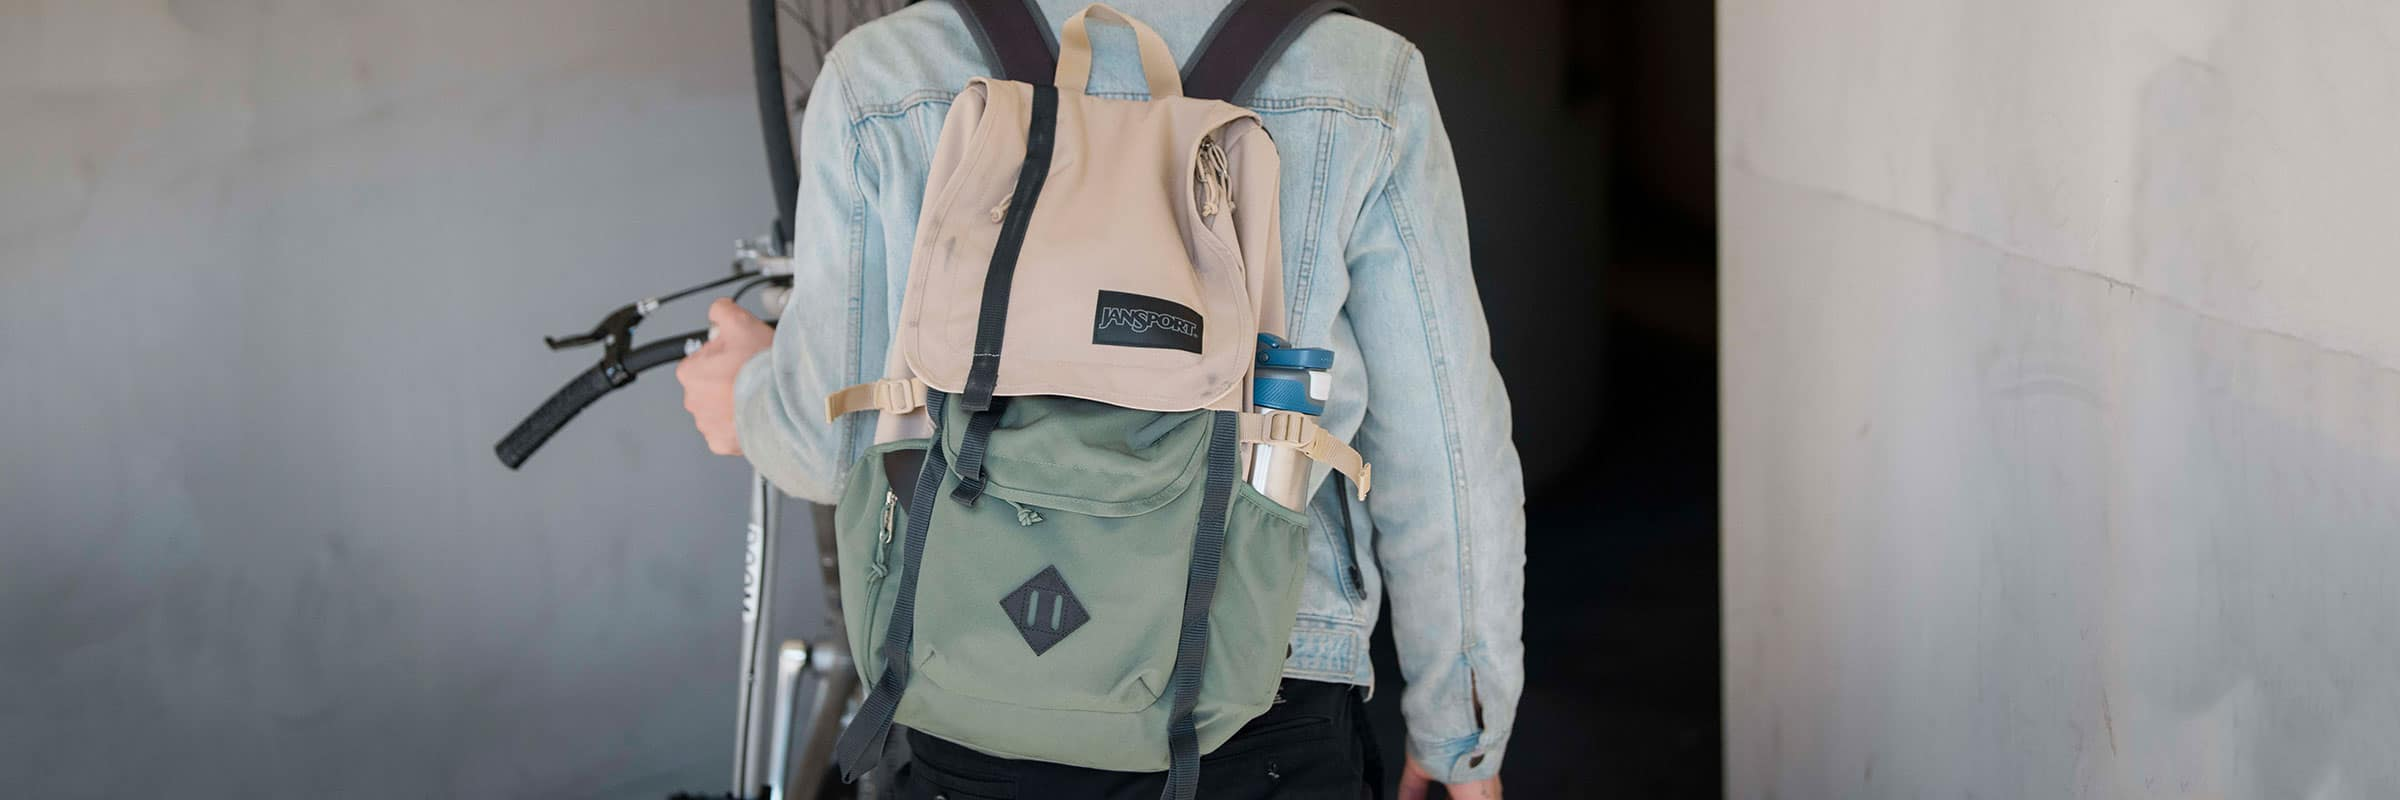 5 Backpacks Made For the Urban Commuter